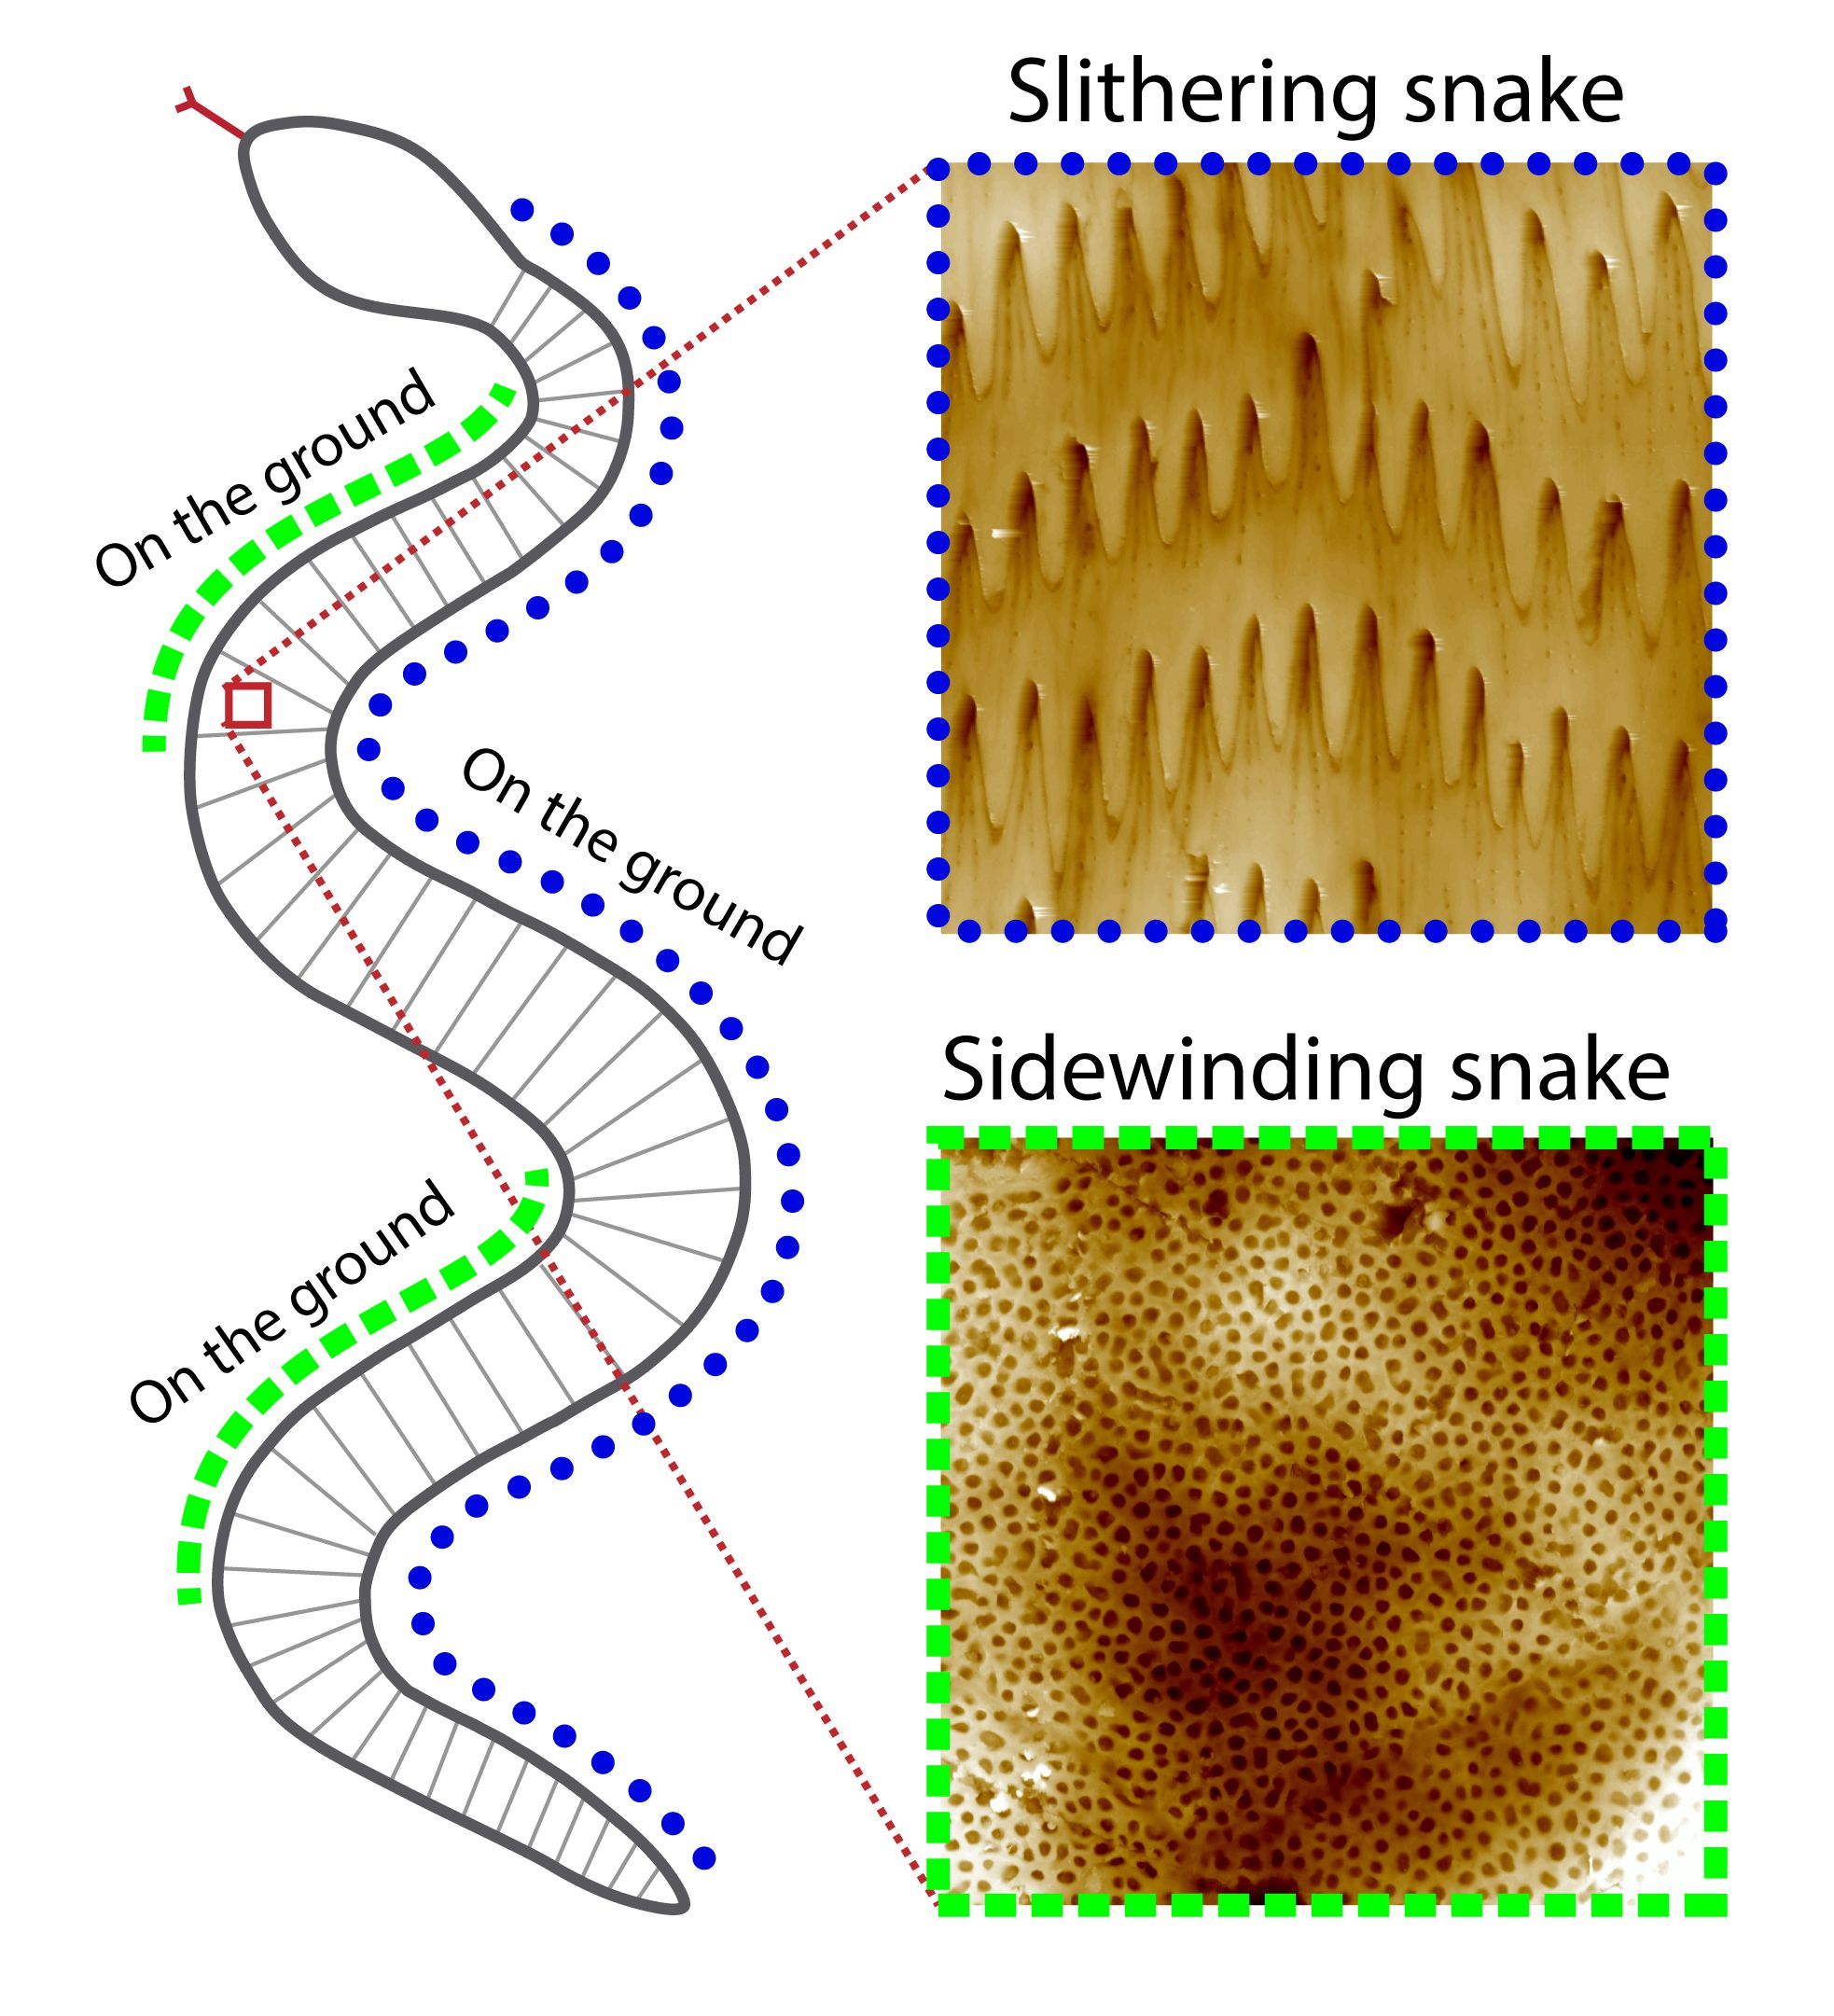 snake diagram links image of skin spikes with snakes who keep their whole bellies on the ground, and links sidewinder skin pits with lifting the belly